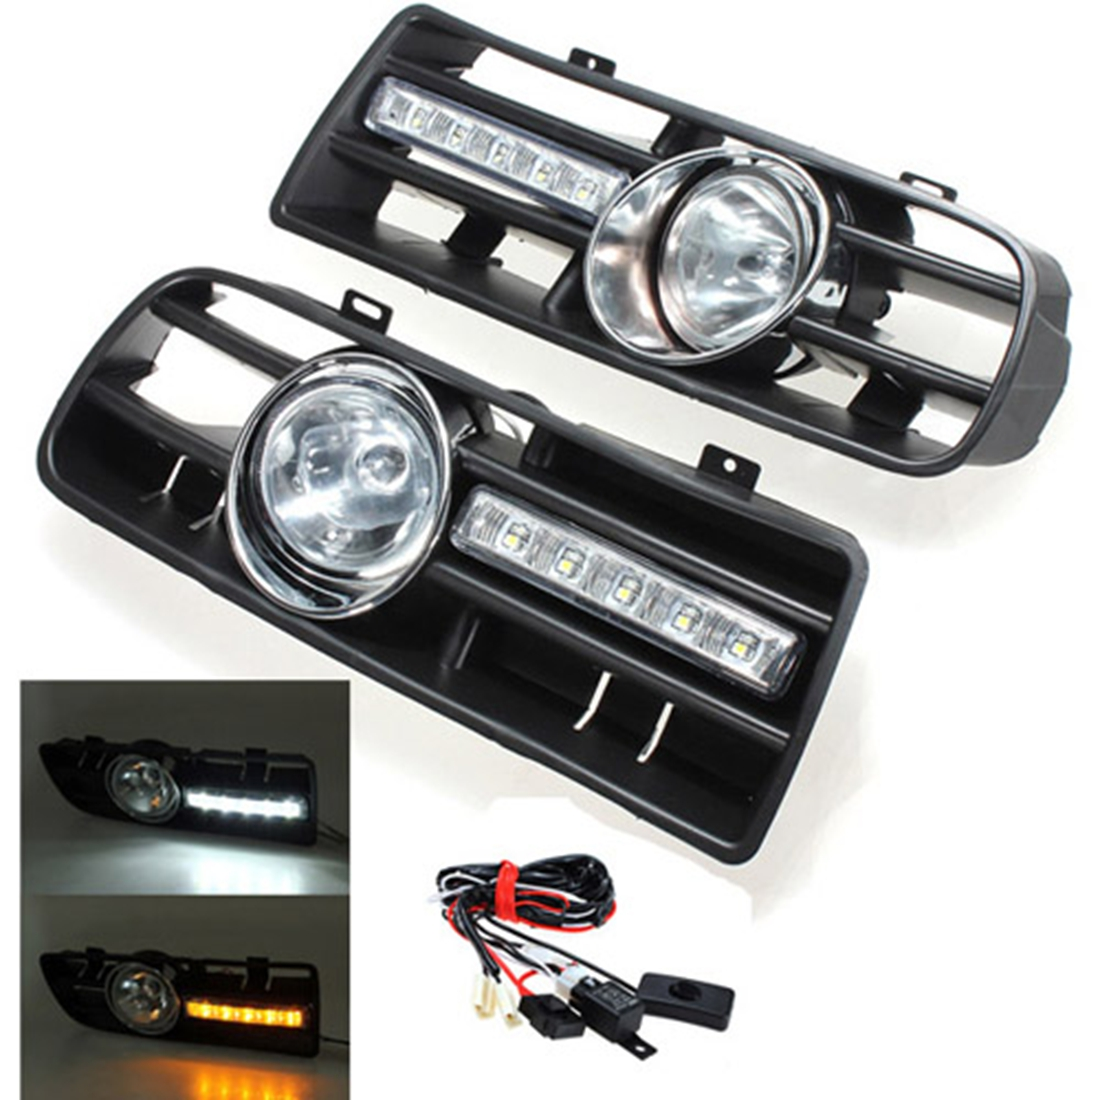 2 x led phares antibrouillard projecteur grille pare chocs voiture pr 97 06 vw golf 4 mk4 iv. Black Bedroom Furniture Sets. Home Design Ideas